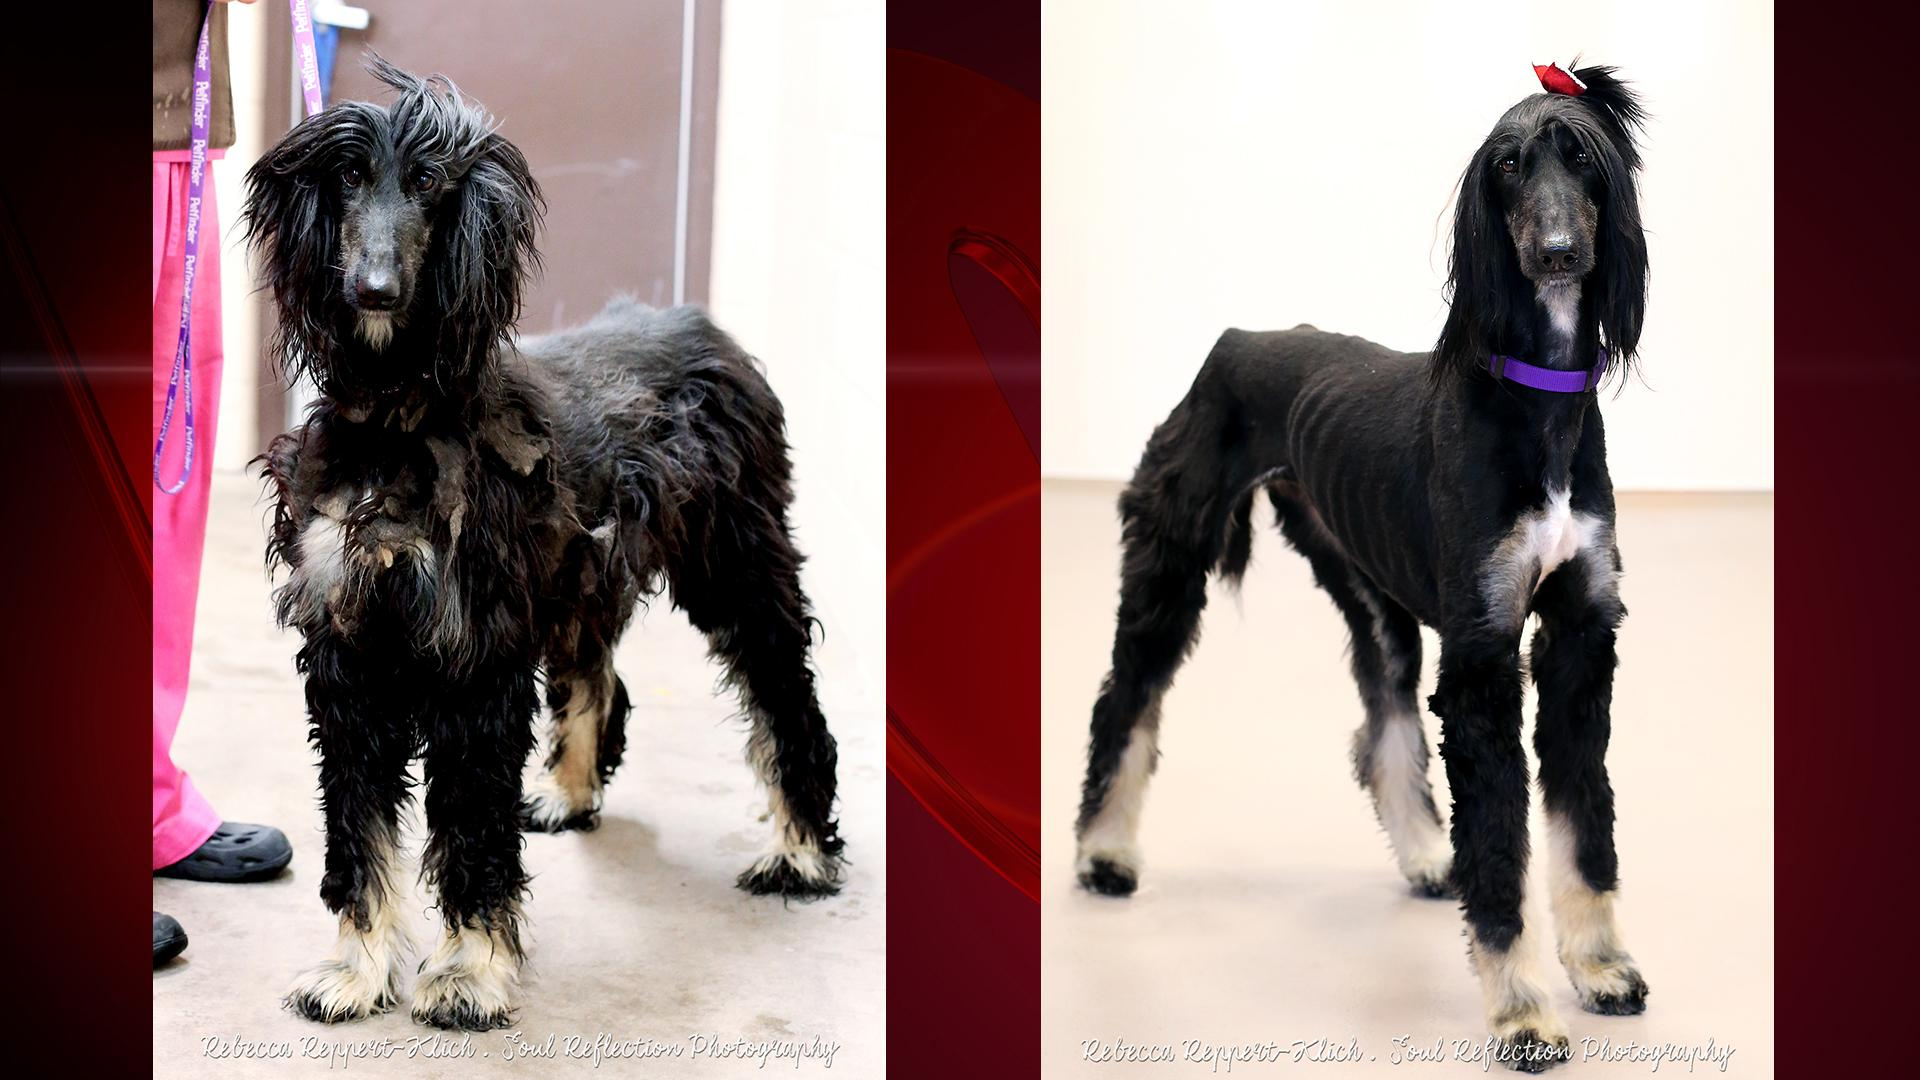 Sheri the dog's before and after photo (Photos courtesy of Fox Valley Humane Association)